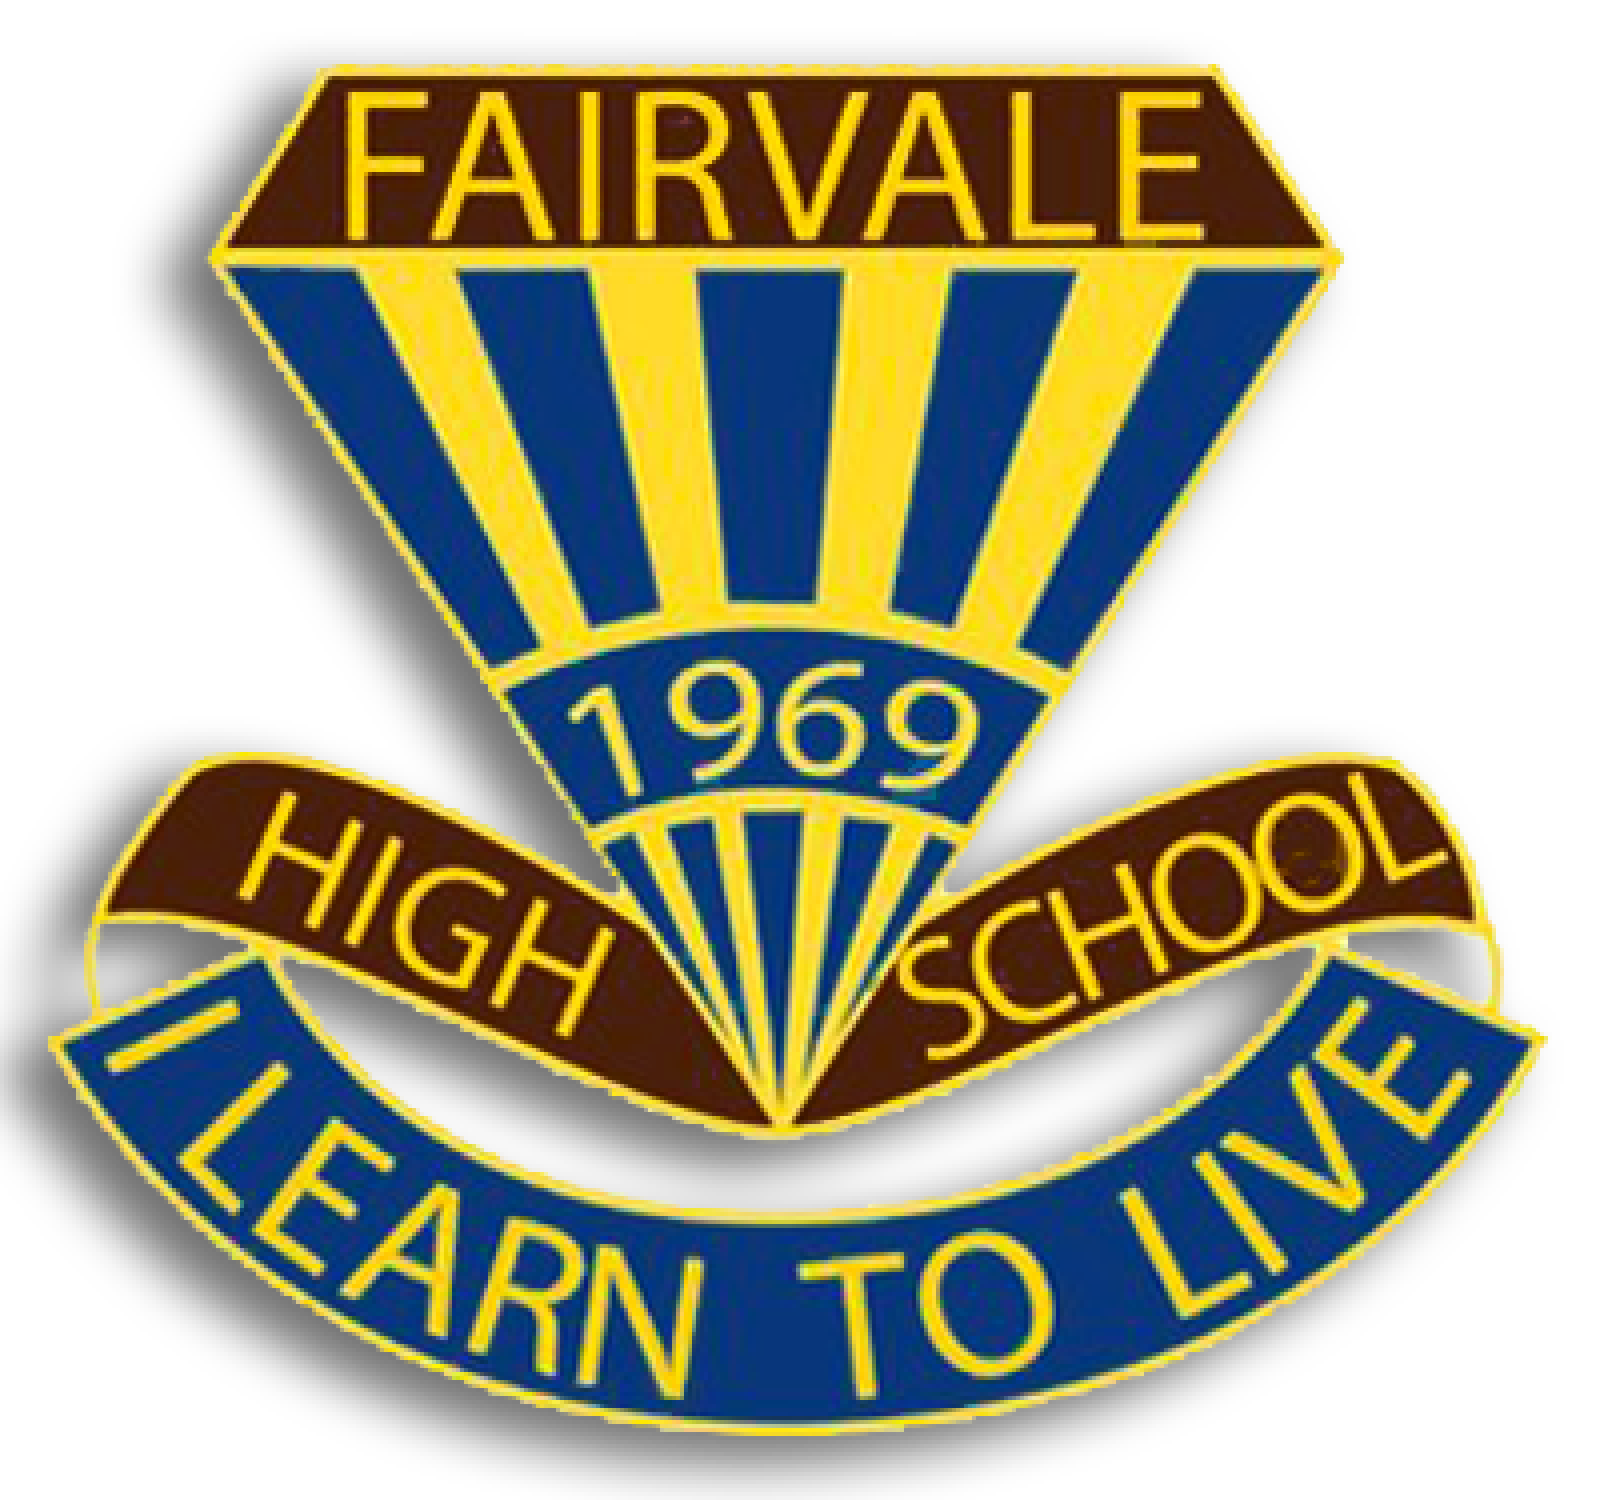 Fairvale High School logo